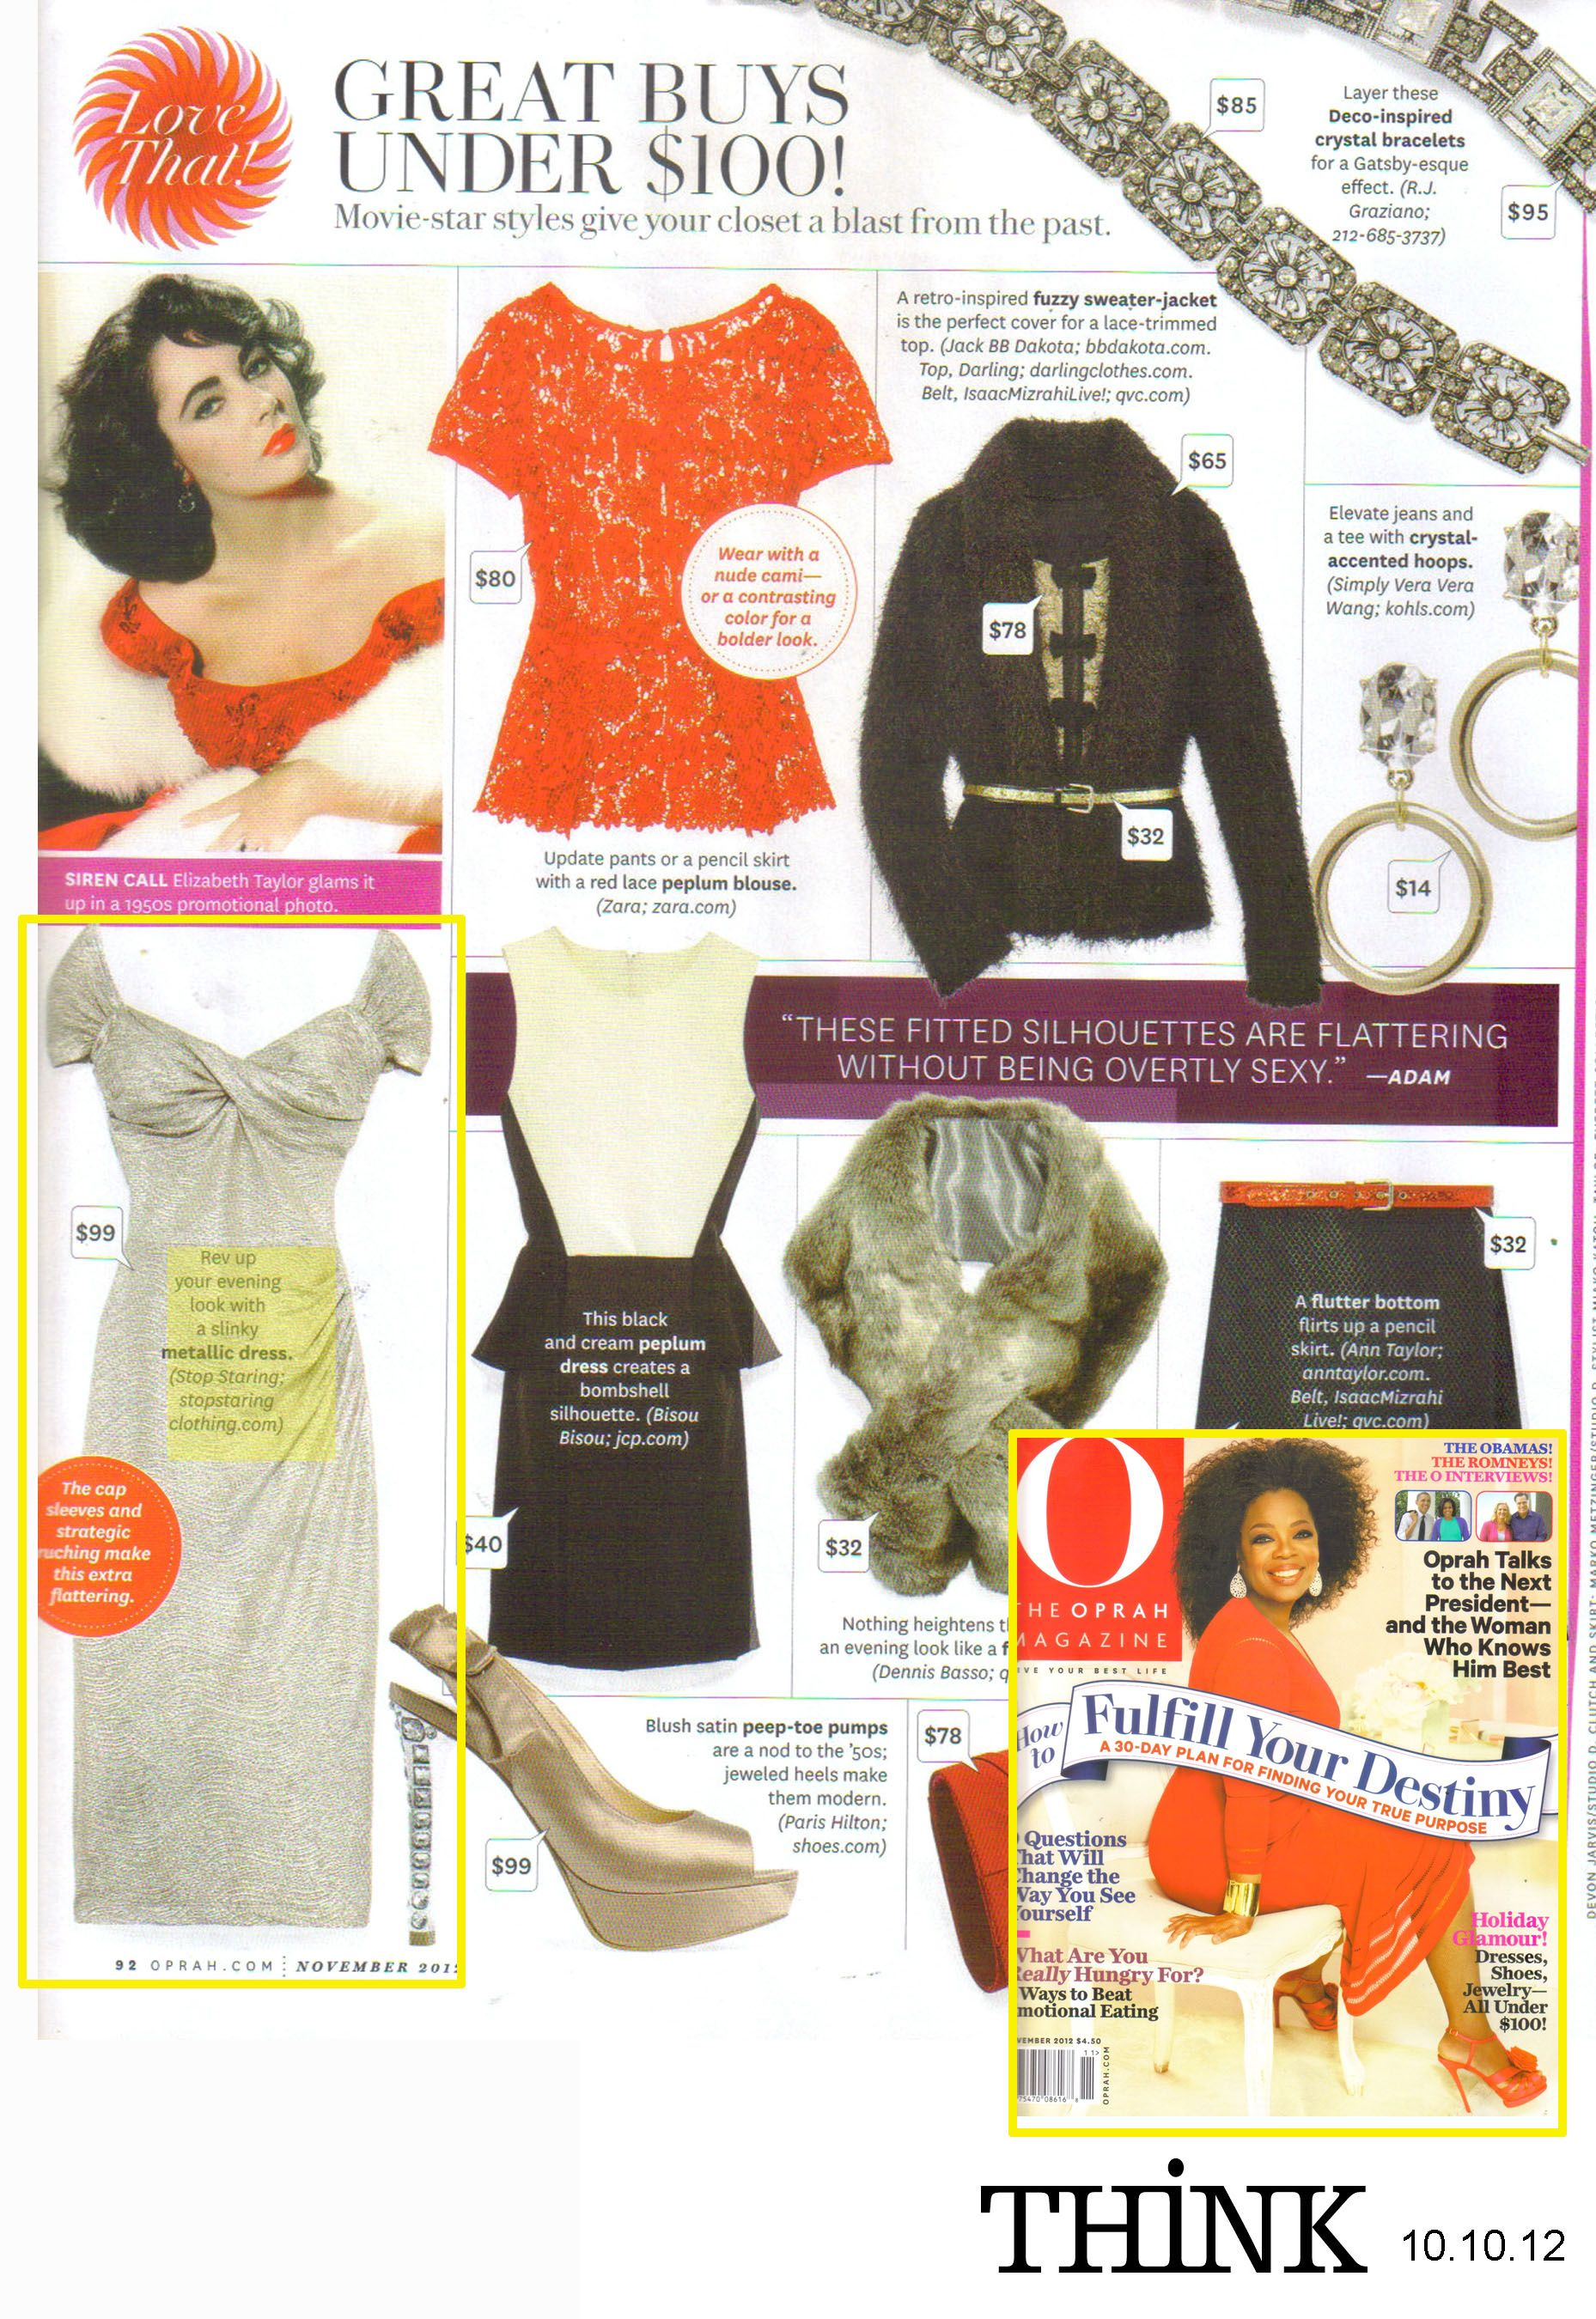 The 'Fortune' Dress by Stop Staring! in O, THE OPRAH MAGAZINE